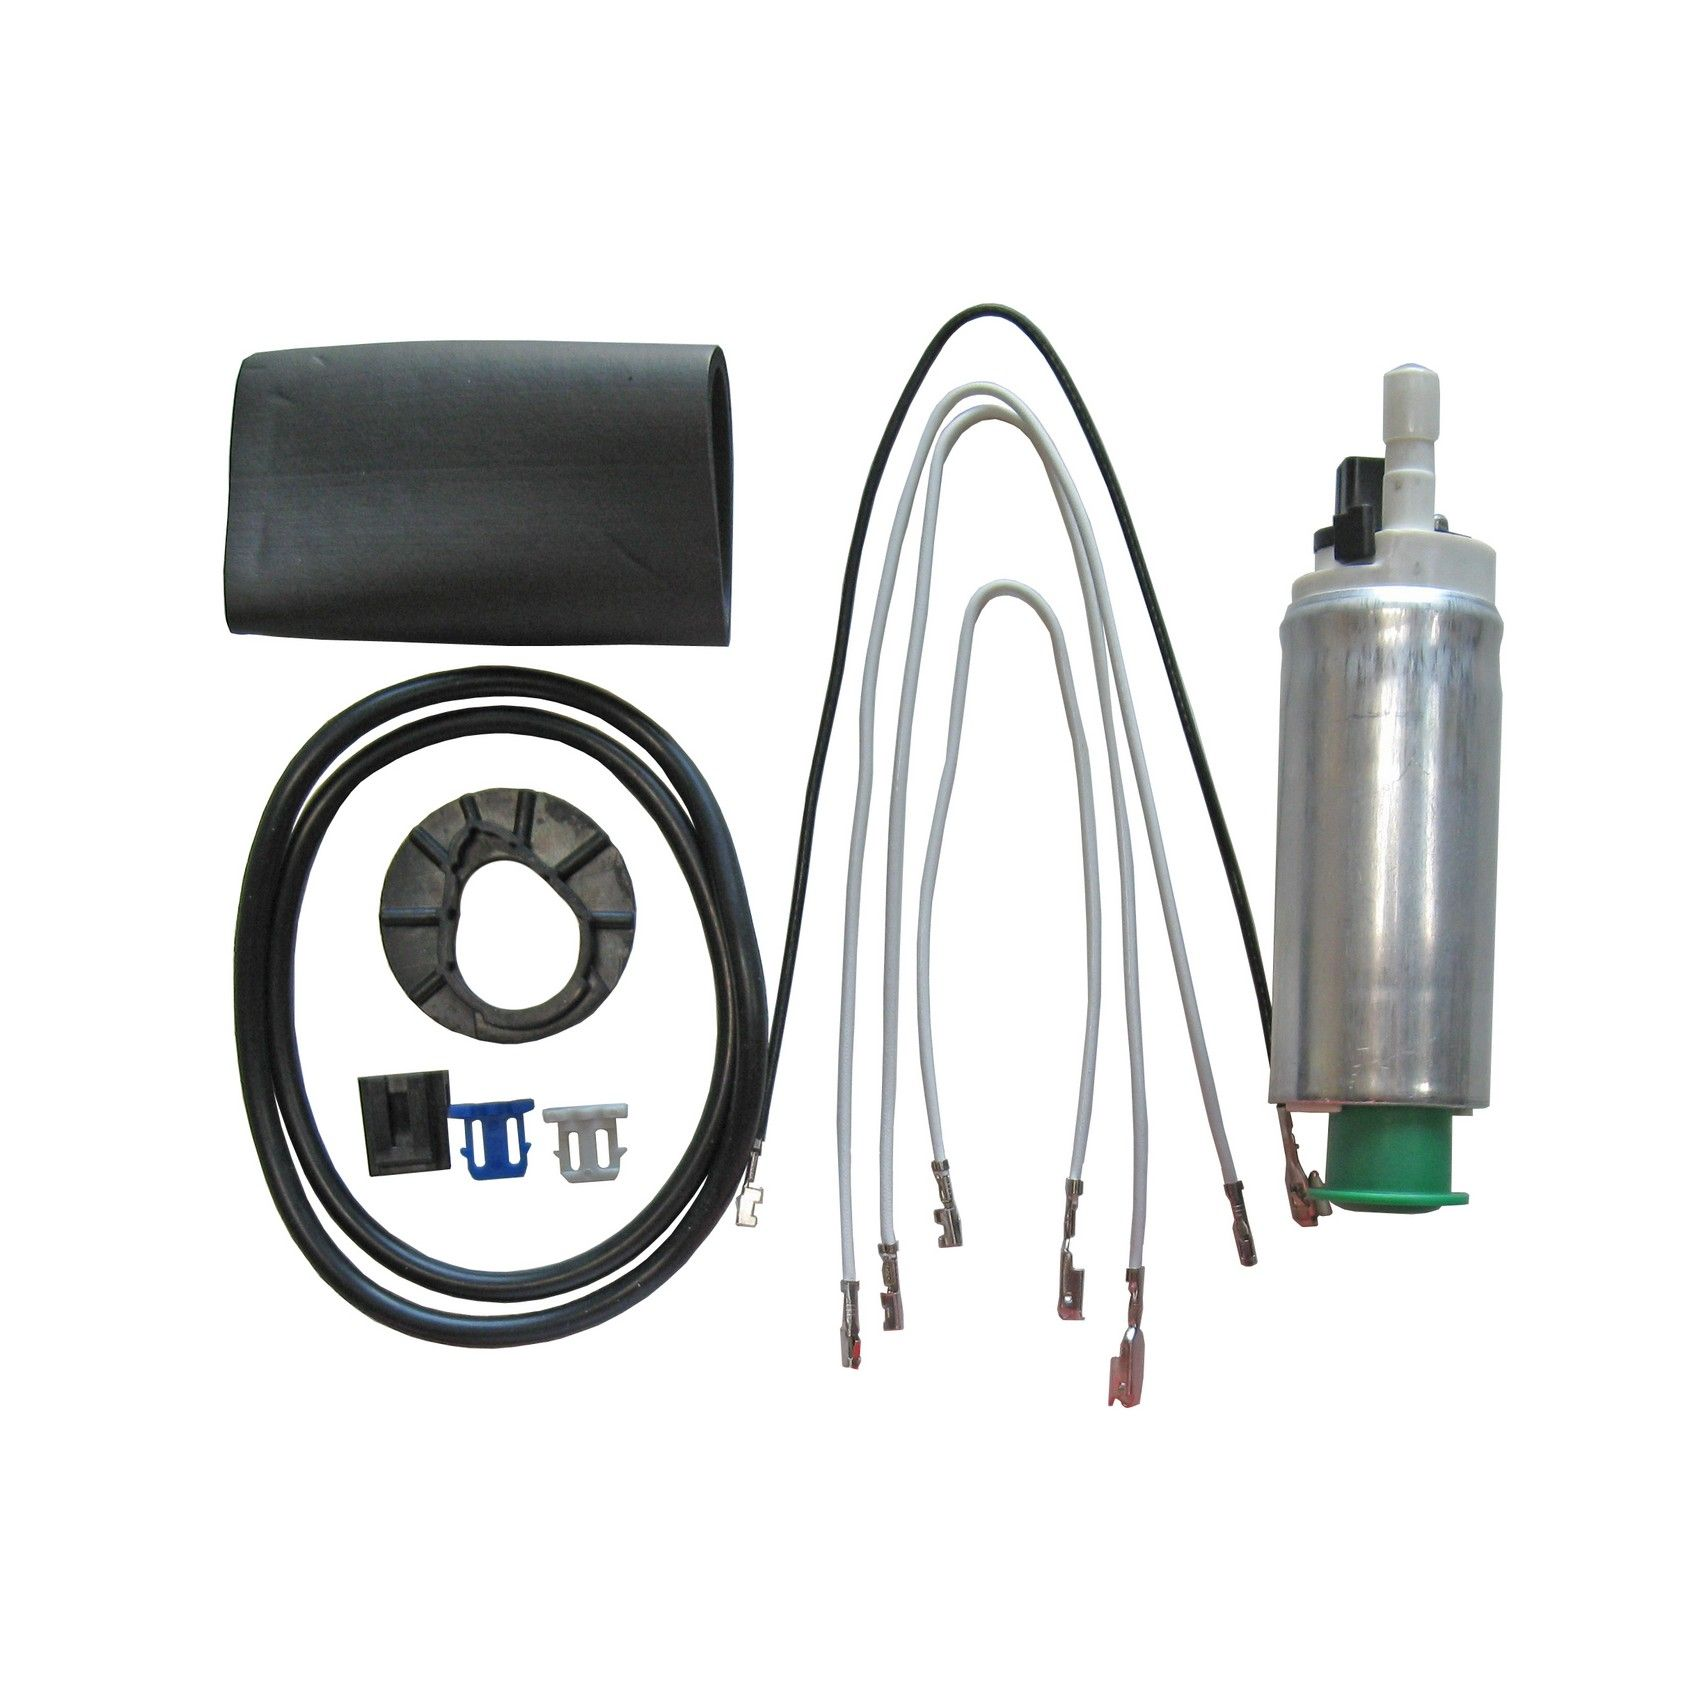 Buick Skylark Electric Fuel Pump Replacement Acdelco Airtex Wiring Harness 1991 4 Cyl 25l Autobest F2223 Recommend To Replace Fw900 Strainer Required Validate The Warranty